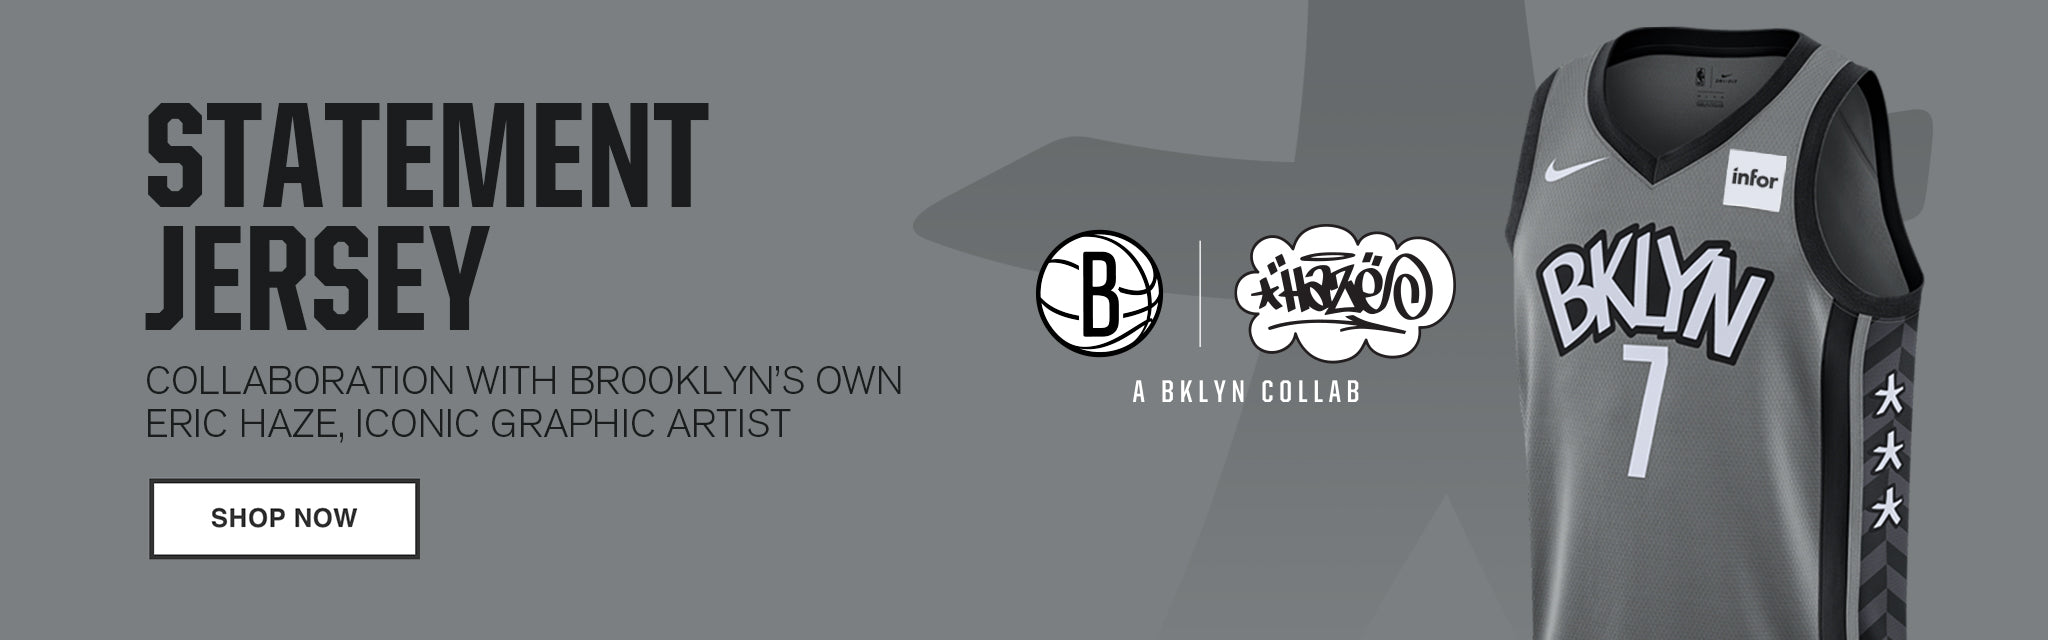 Statement Edition Banner Image - Brooklyn Nets